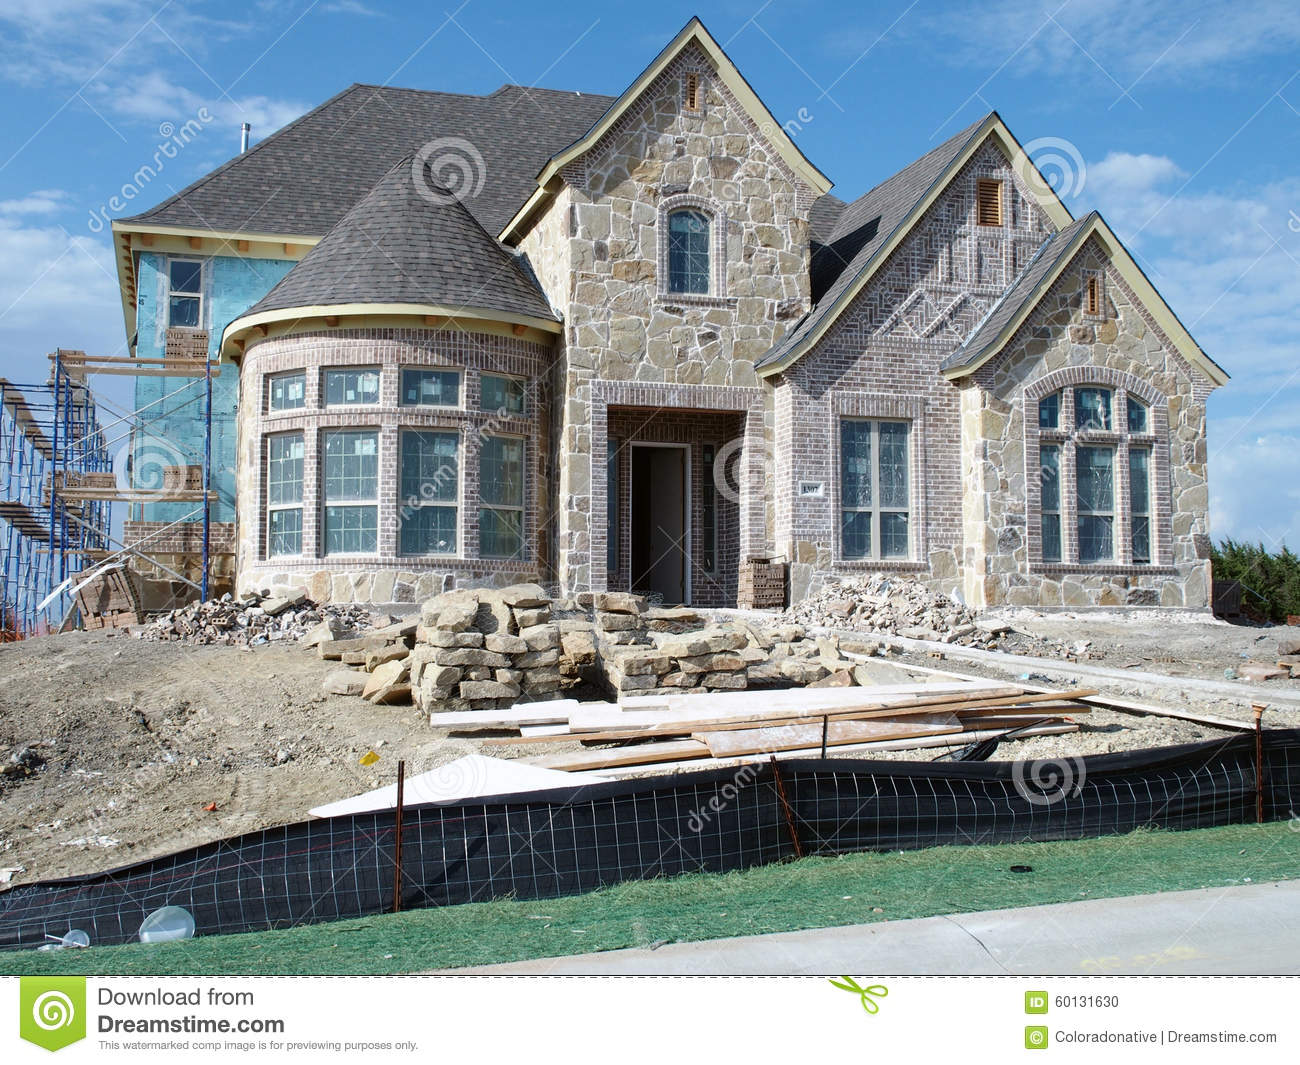 New Home Construction Stock Photo Image 60131630